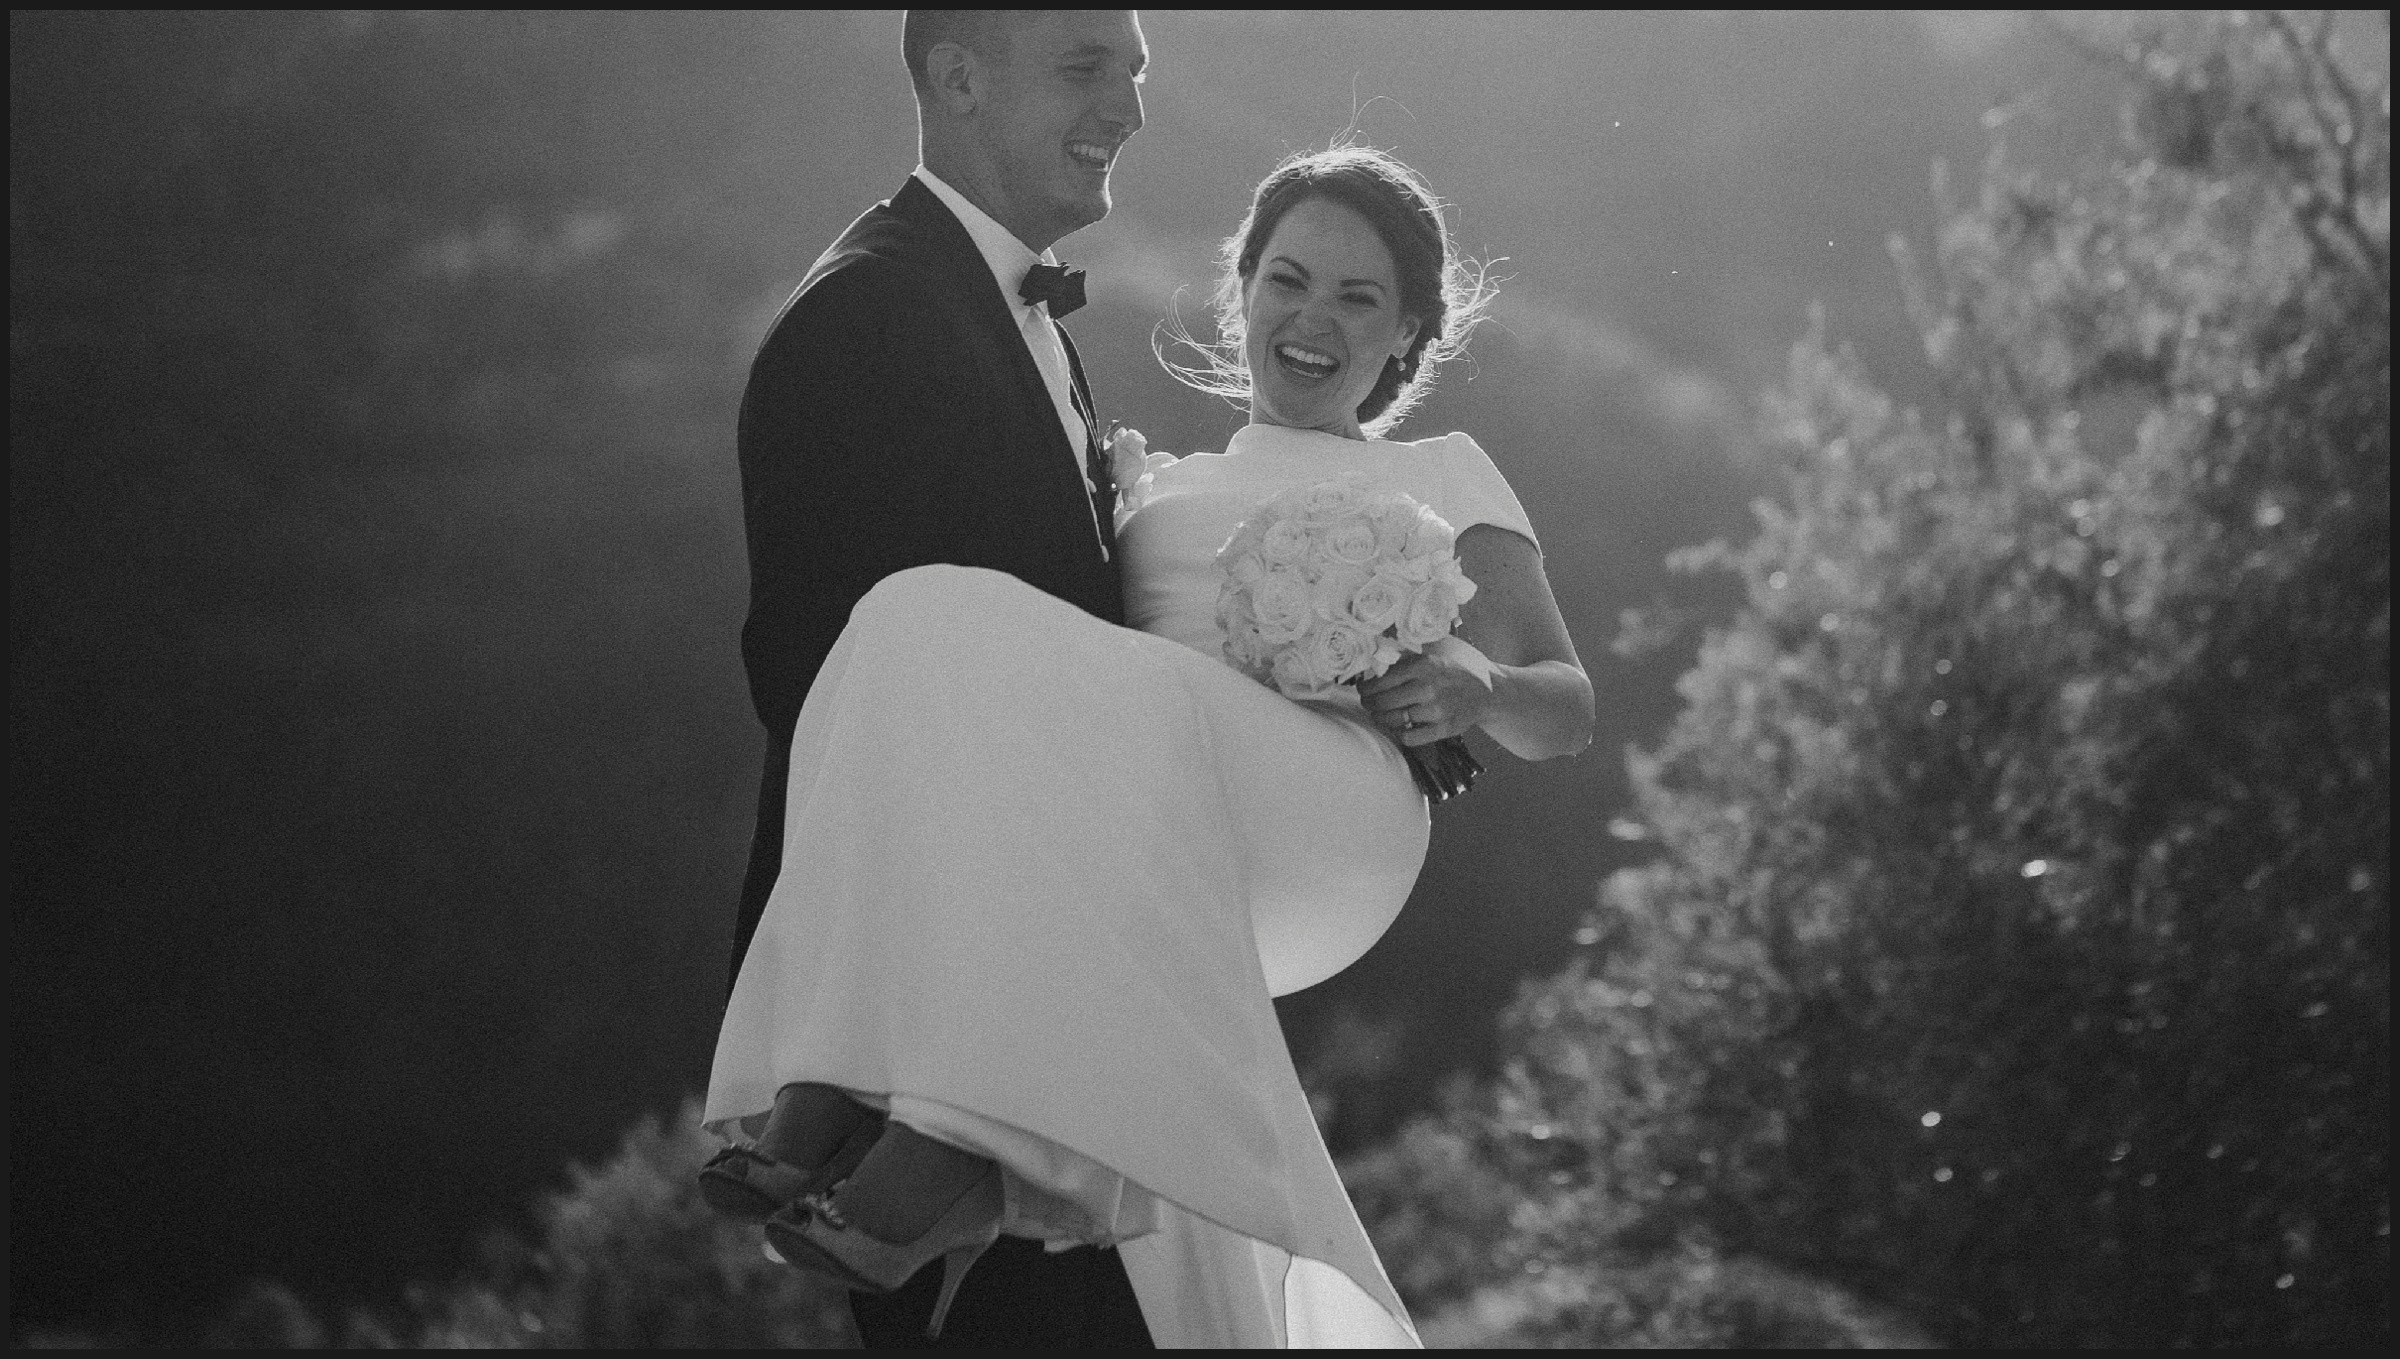 black and white picture of a funny moment between bride and groom